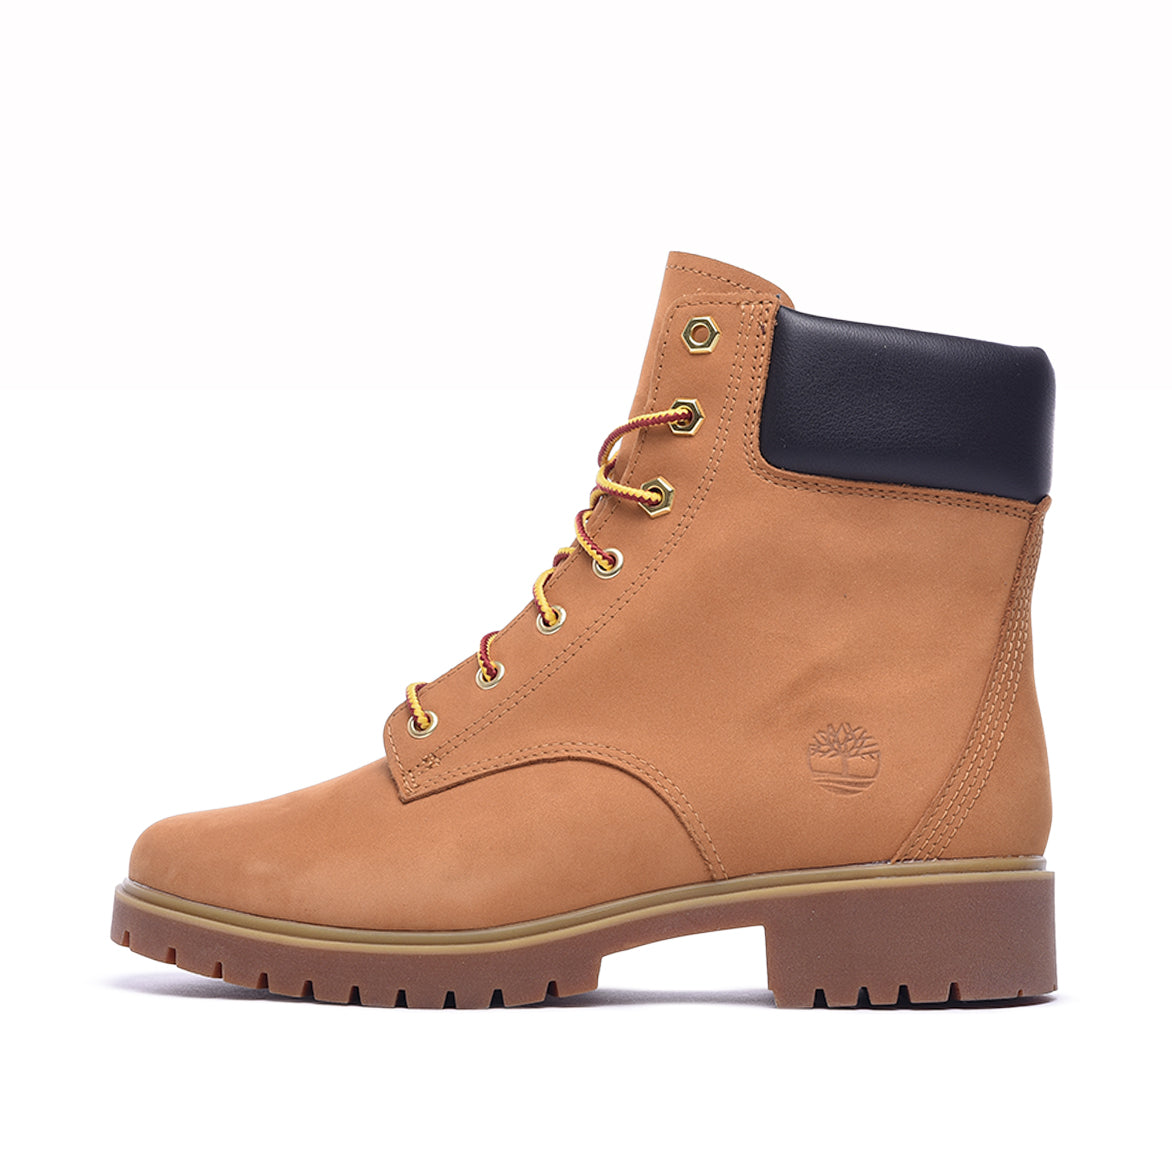 "WMNS JAYNE 6"" WATERPROOF BOOT - WHEAT NUBUCK"